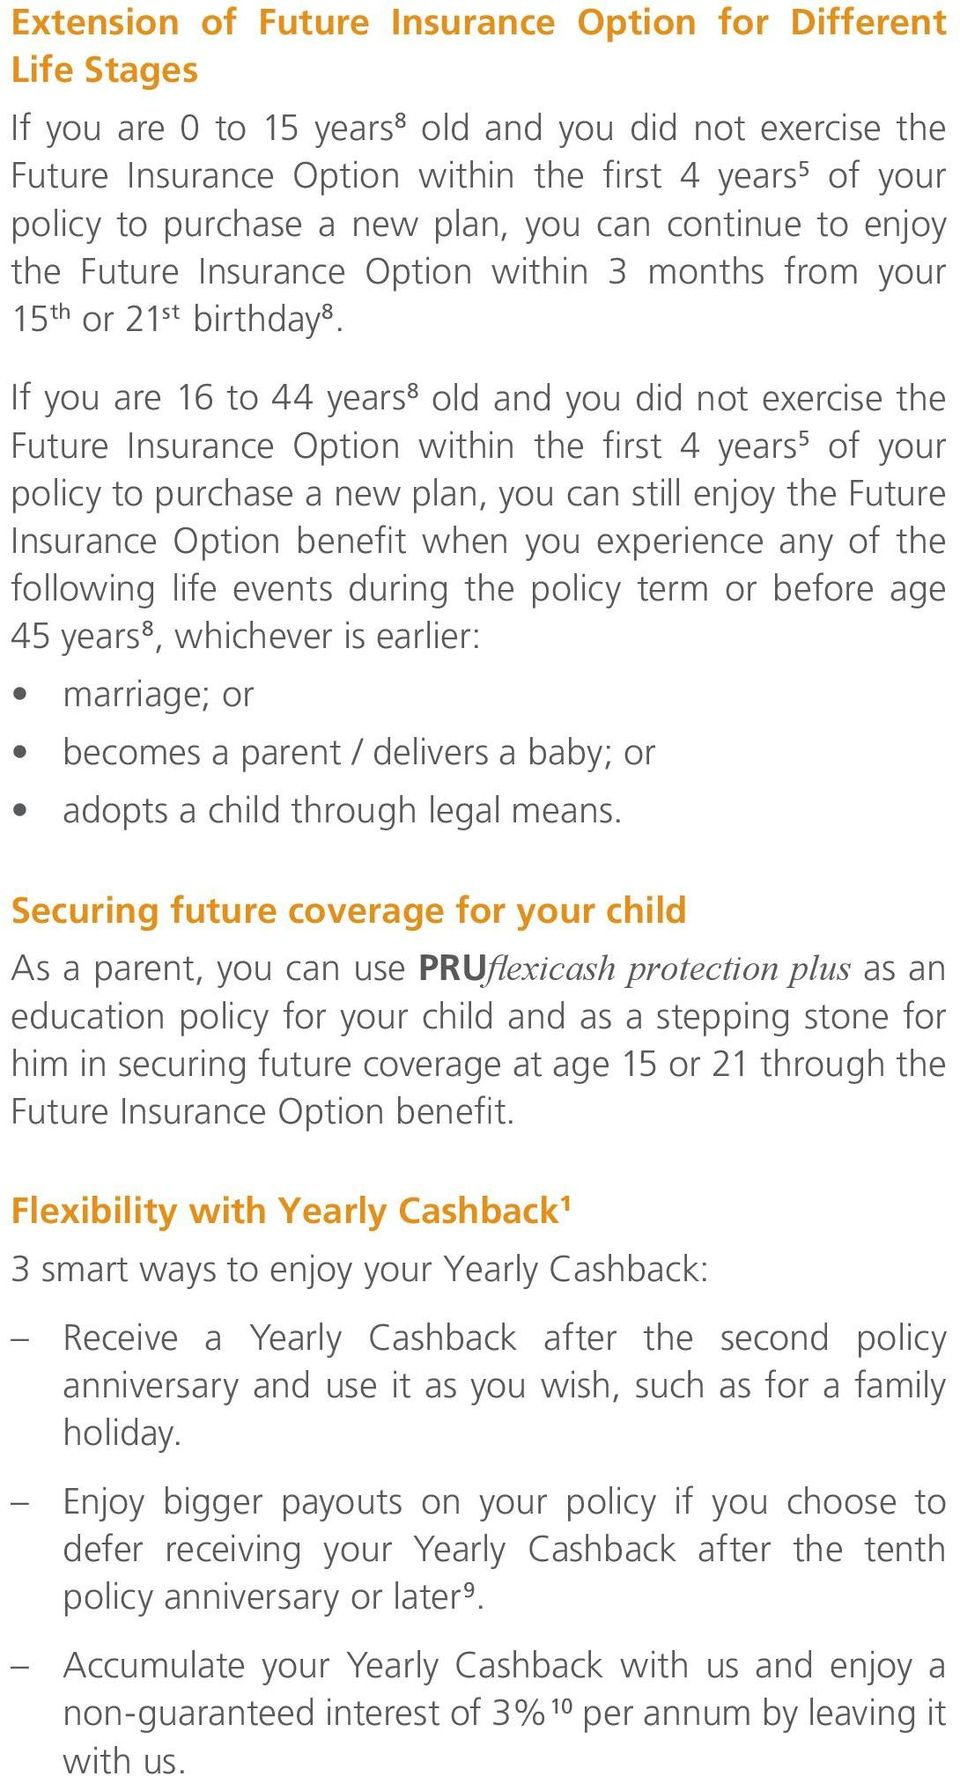 If you are 16 to 44 years 8 old and you did not exercise the Future Insurance Option within the first 4 years 5 of your policy to purchase a new plan, you can still enjoy the Future Insurance Option